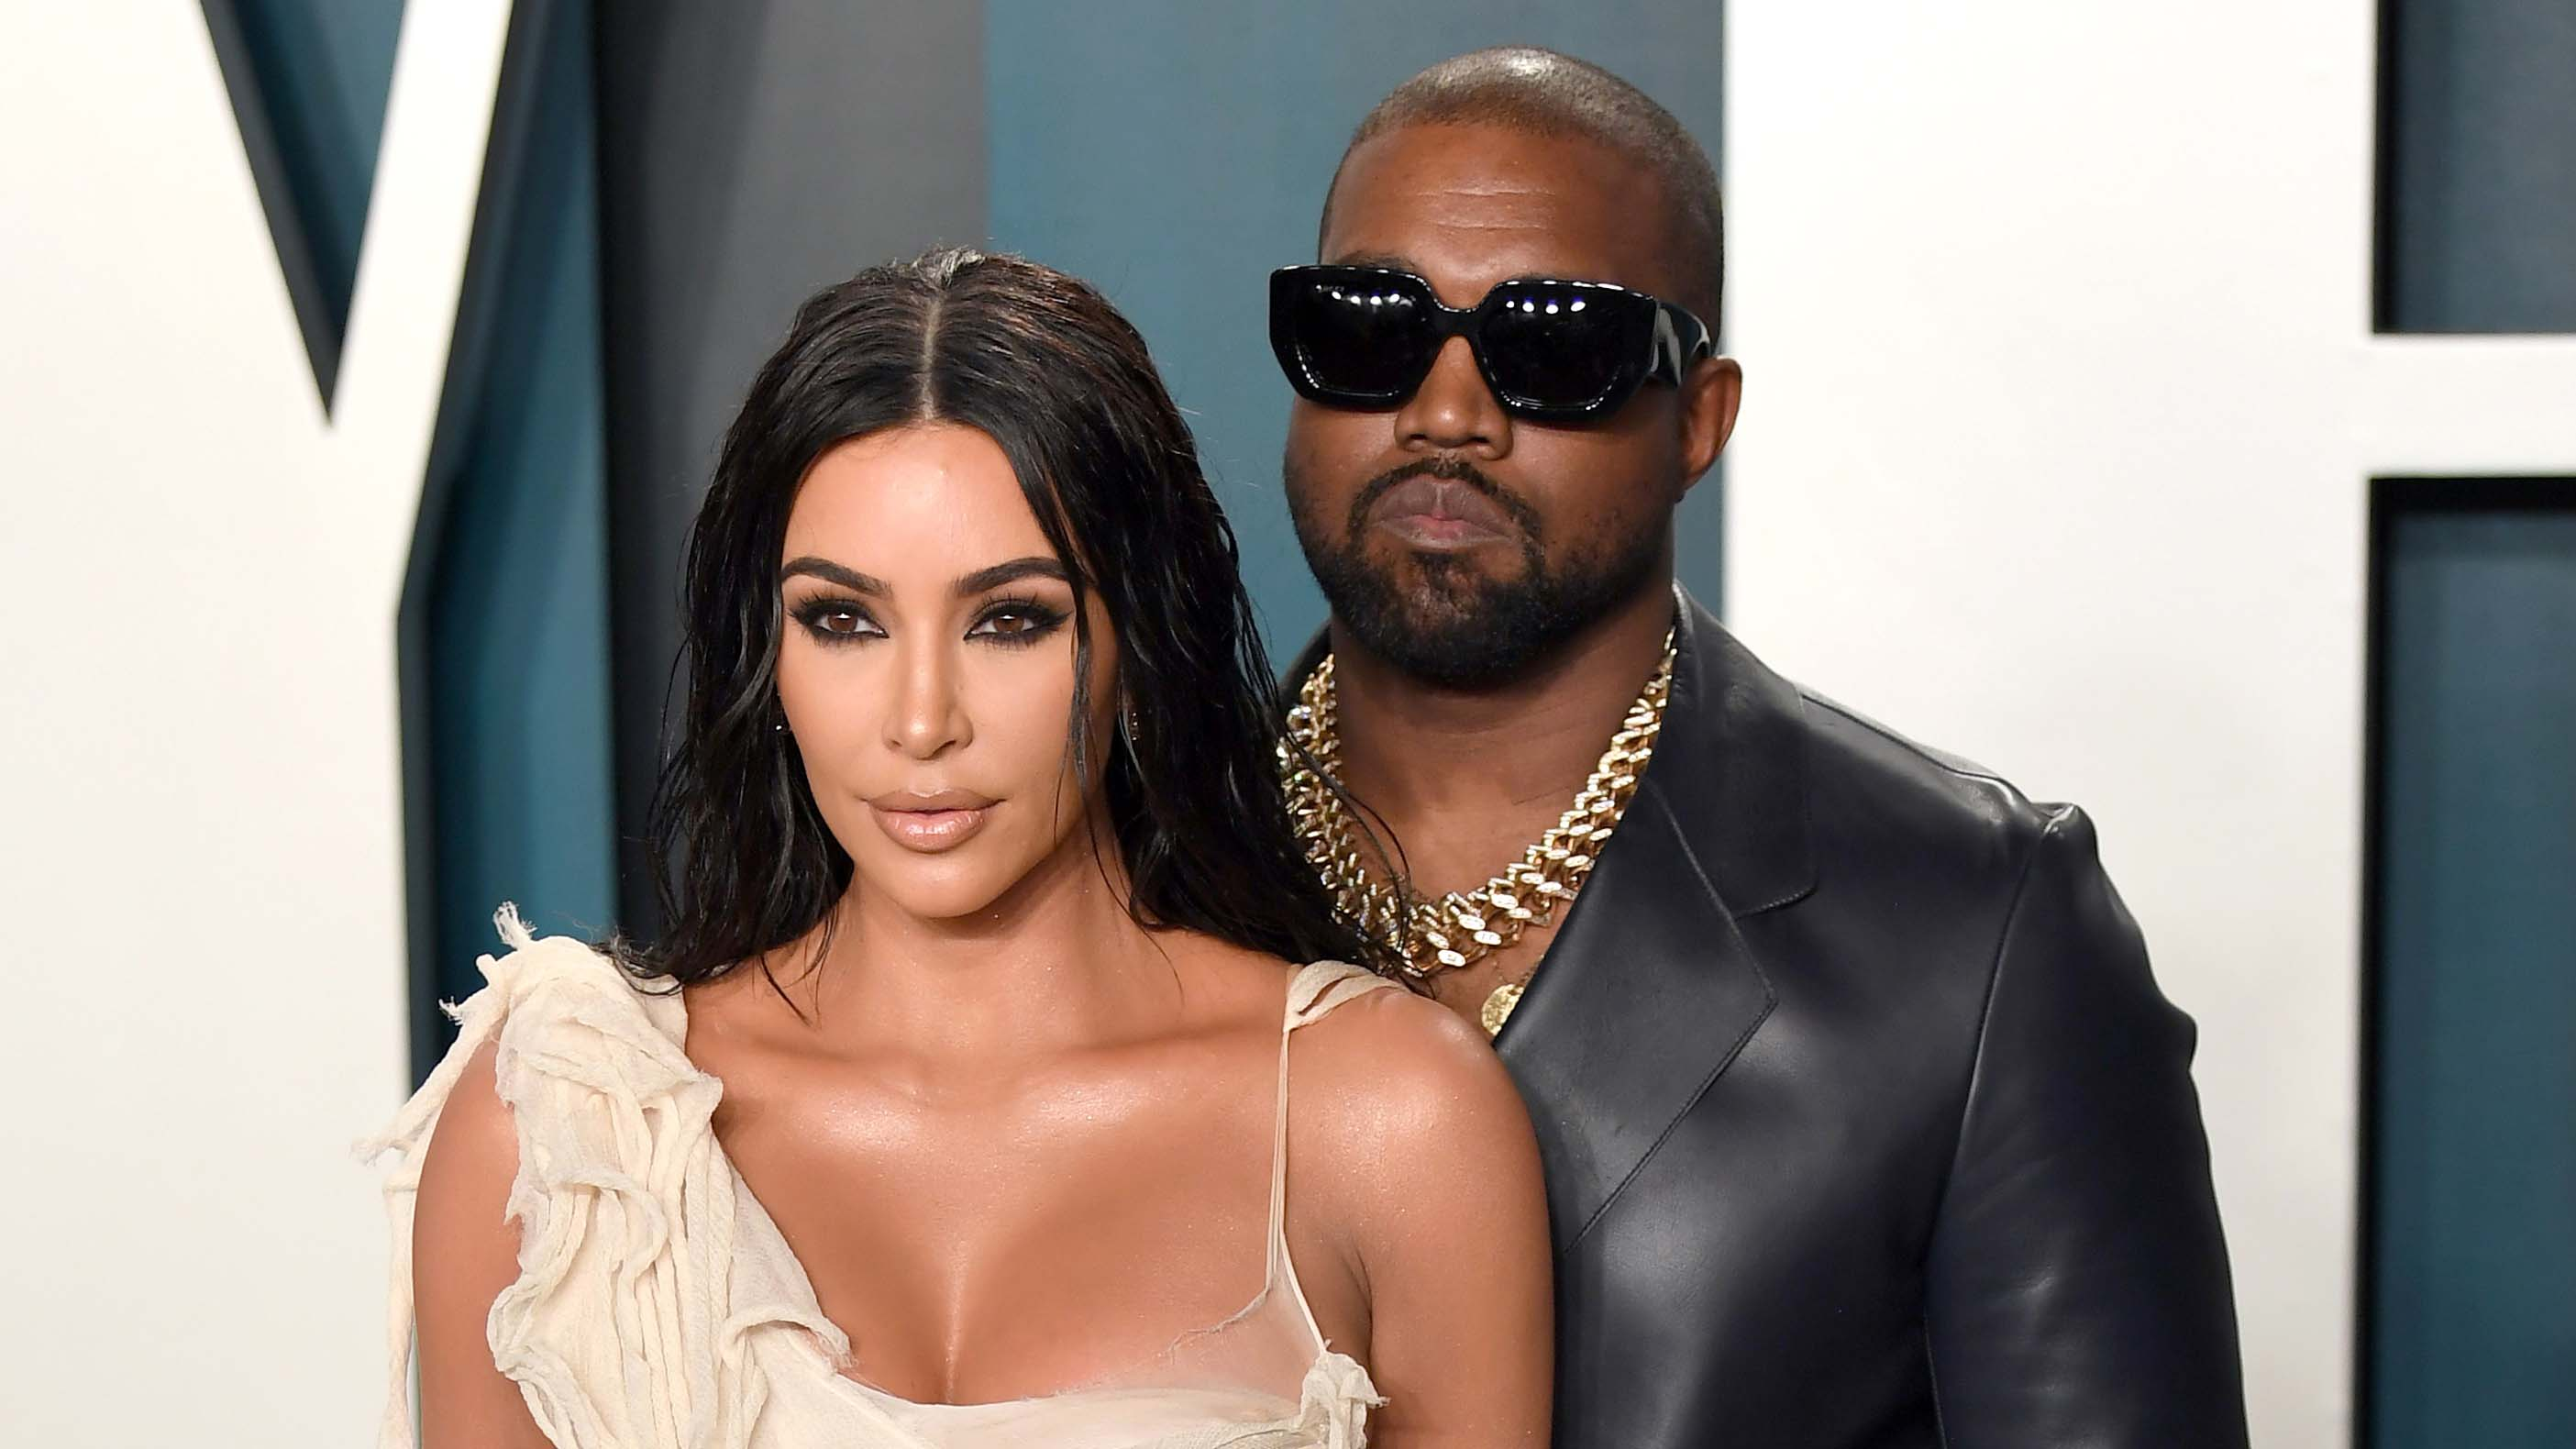 Social media reacts to Kim Kardashian, Kanye West split reports: Really thought they were goals